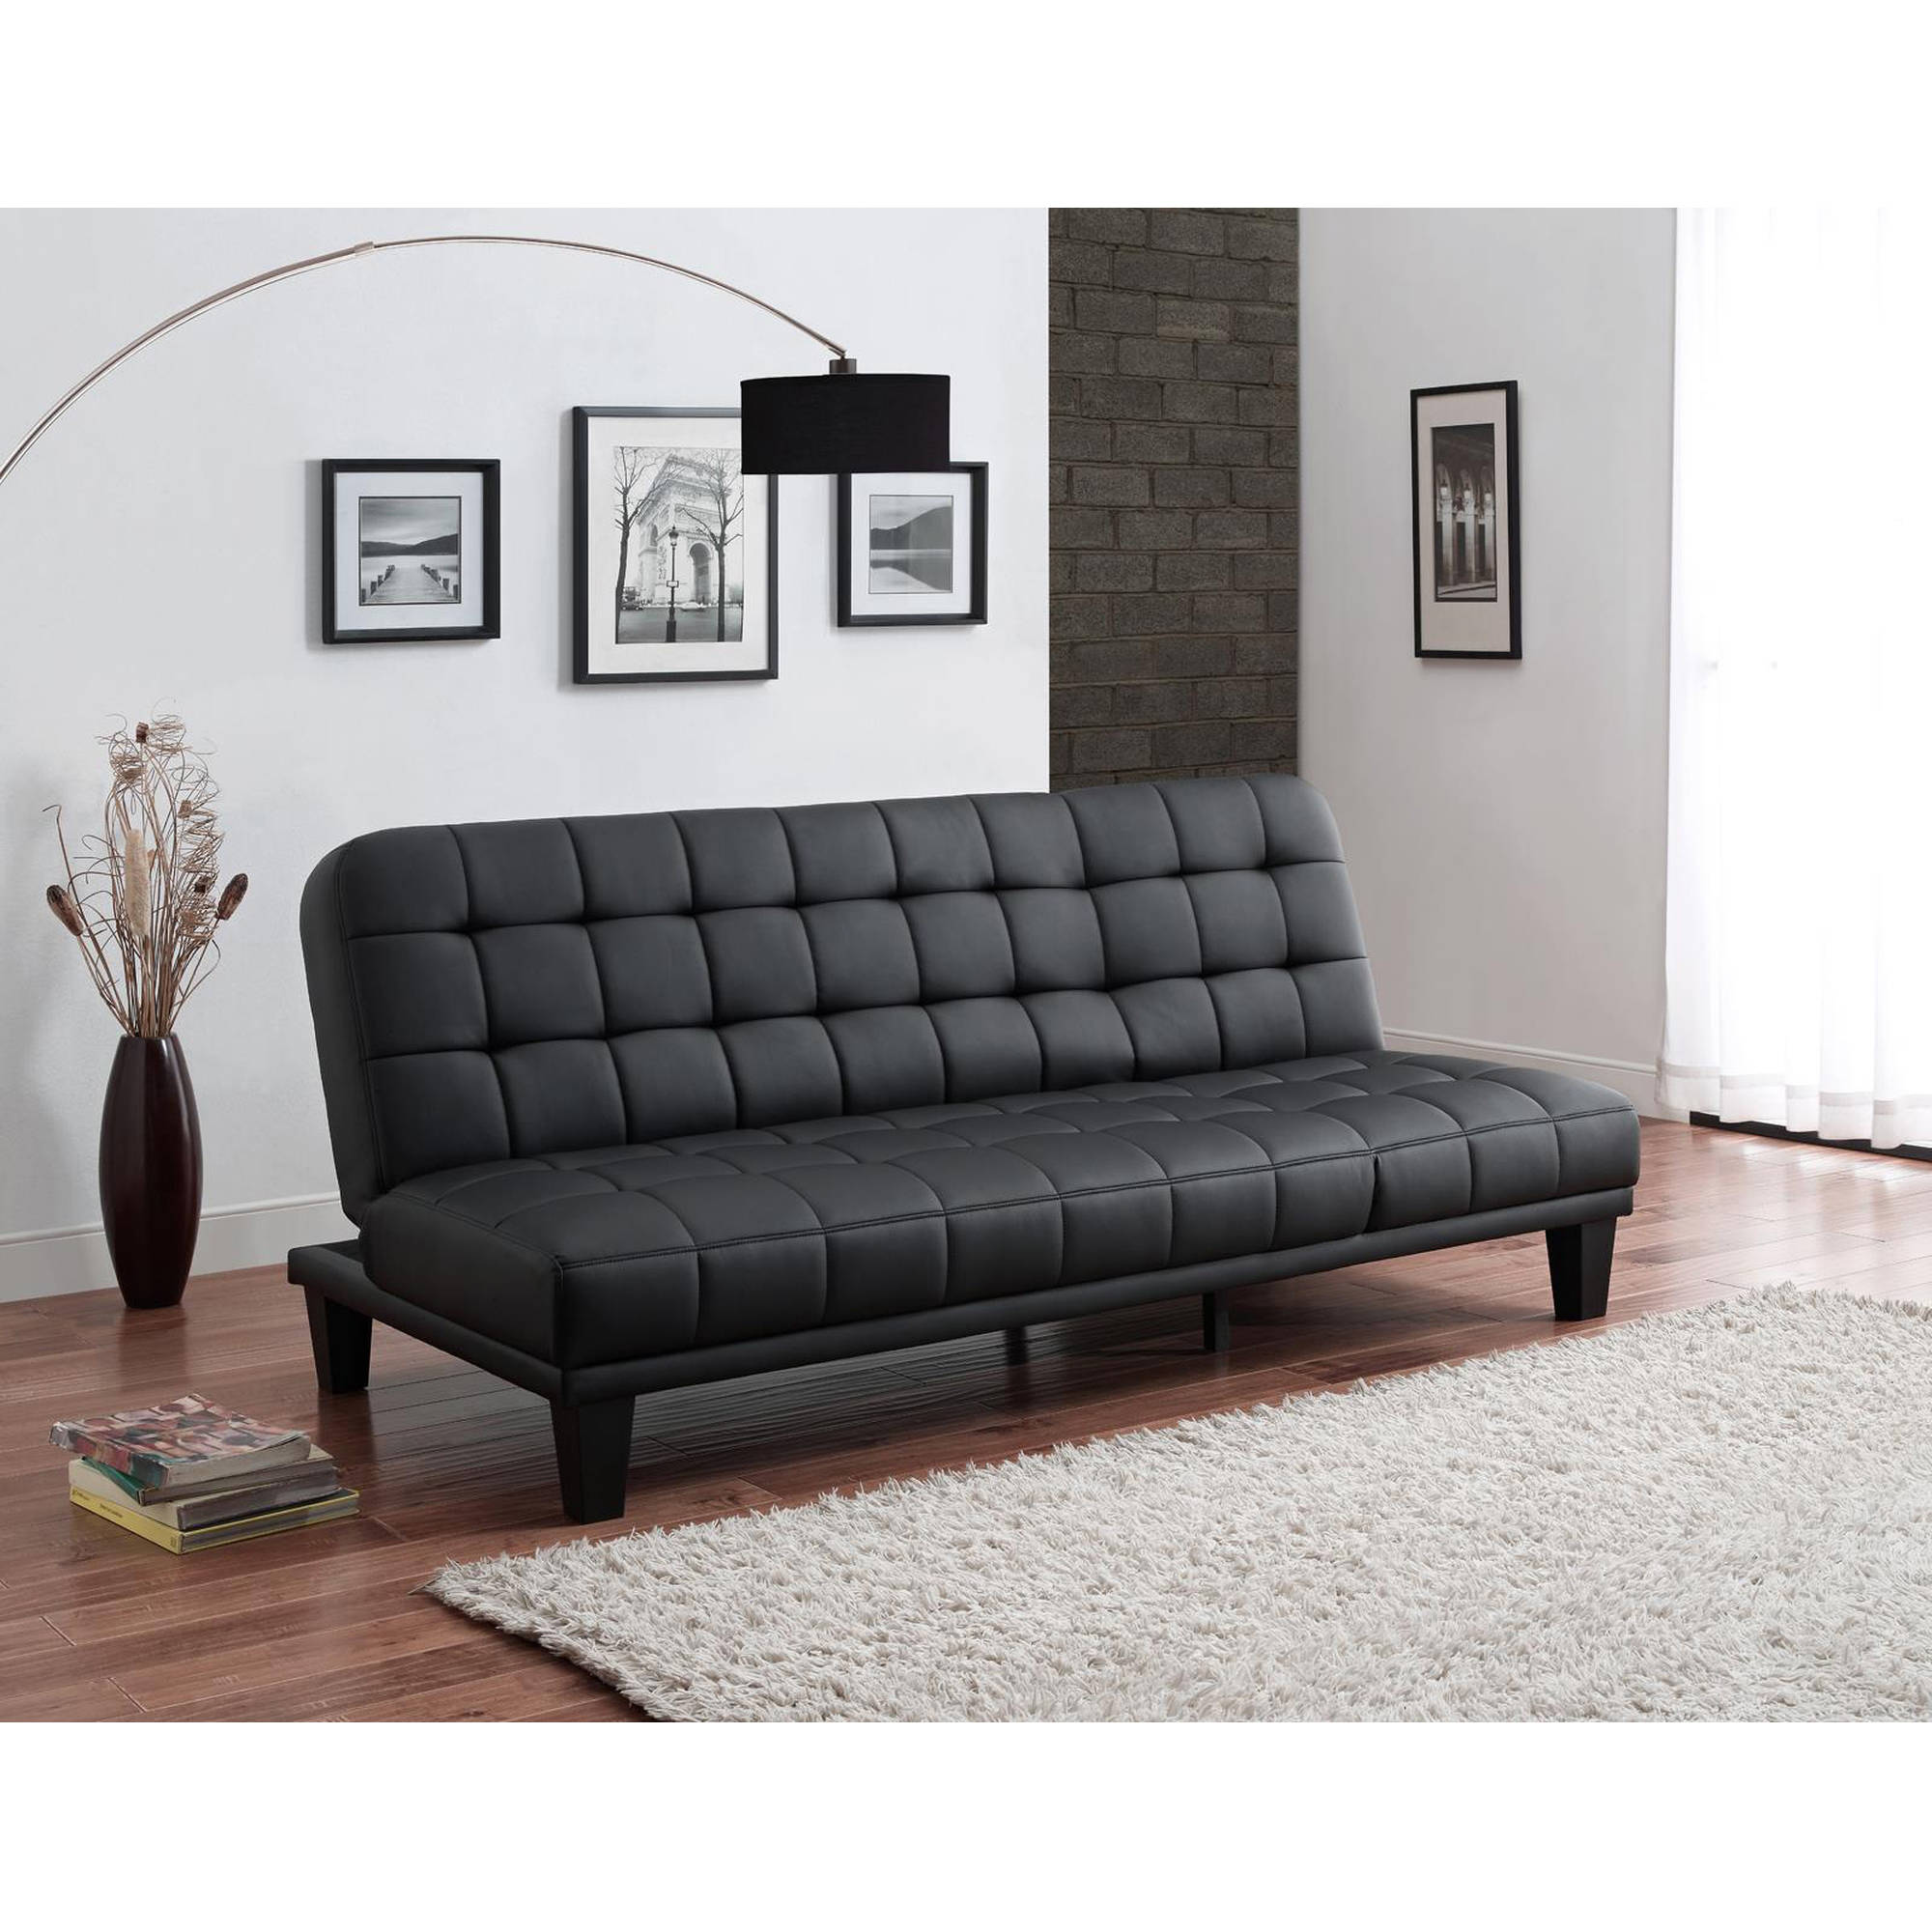 Metropolitan Futon Lounger, Multiple Colors